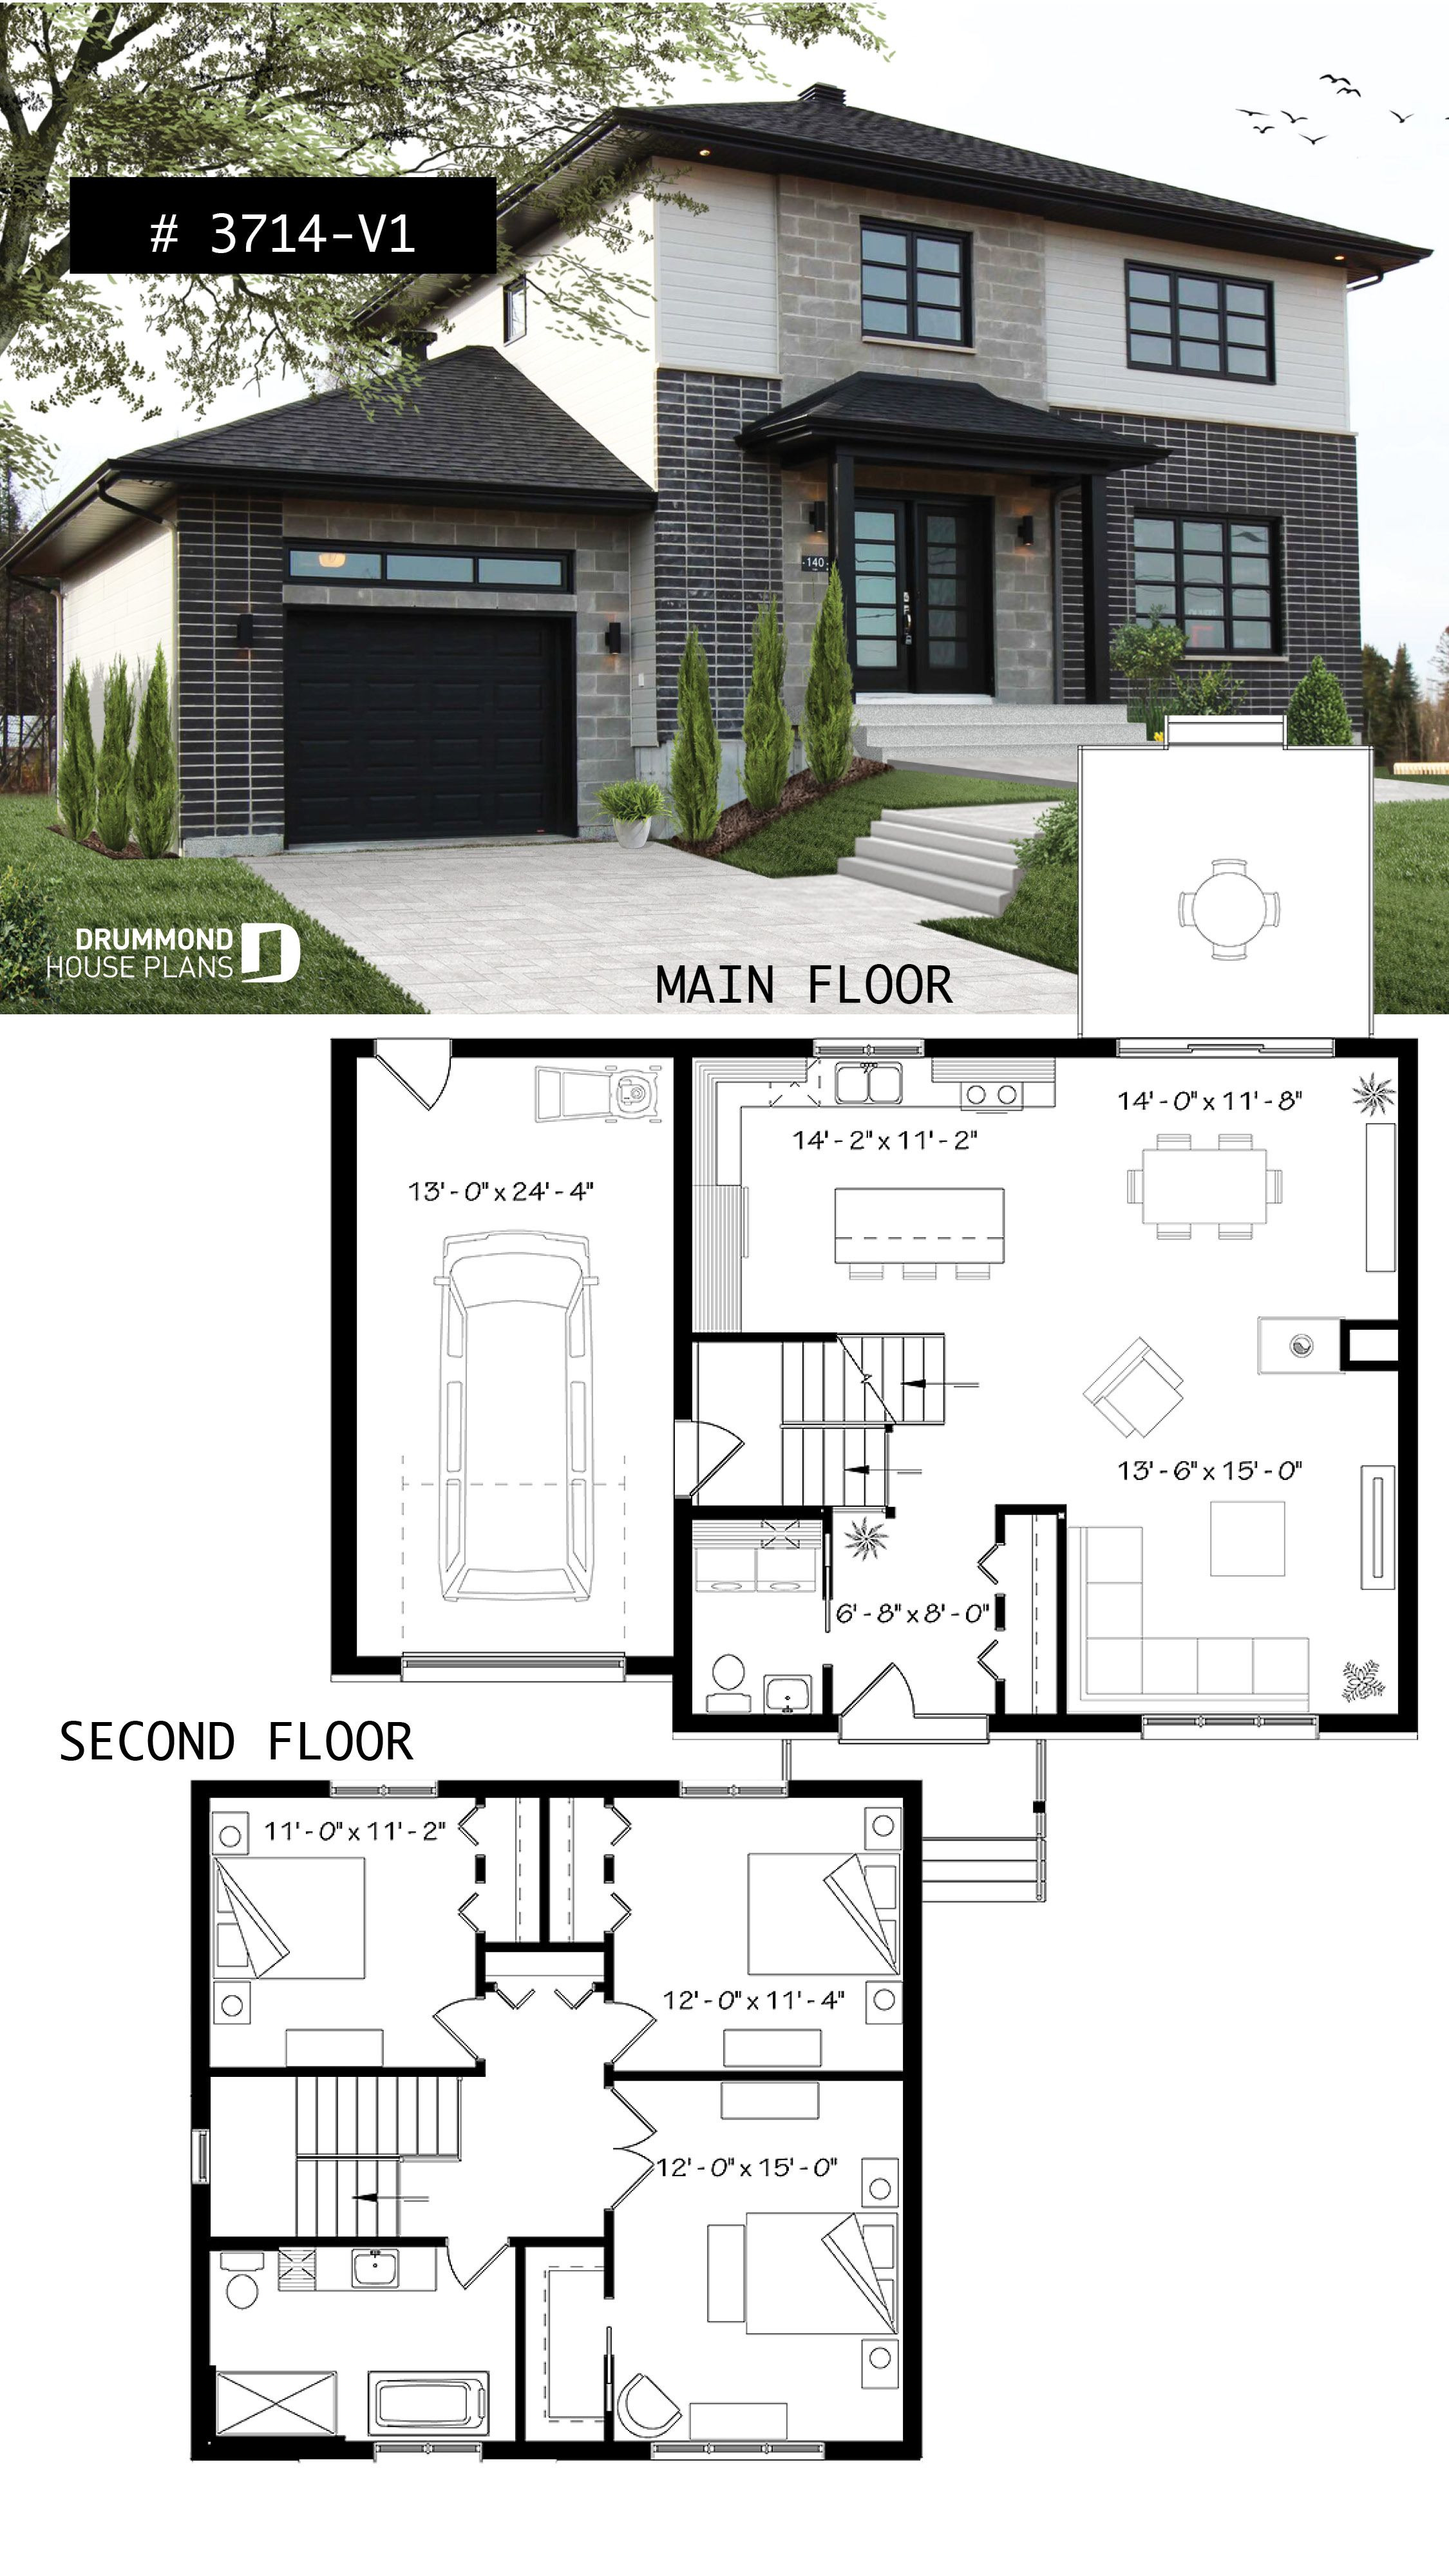 House Plans with Open Floor Plans Beautiful House Plan Altair 2 No 3714 V1